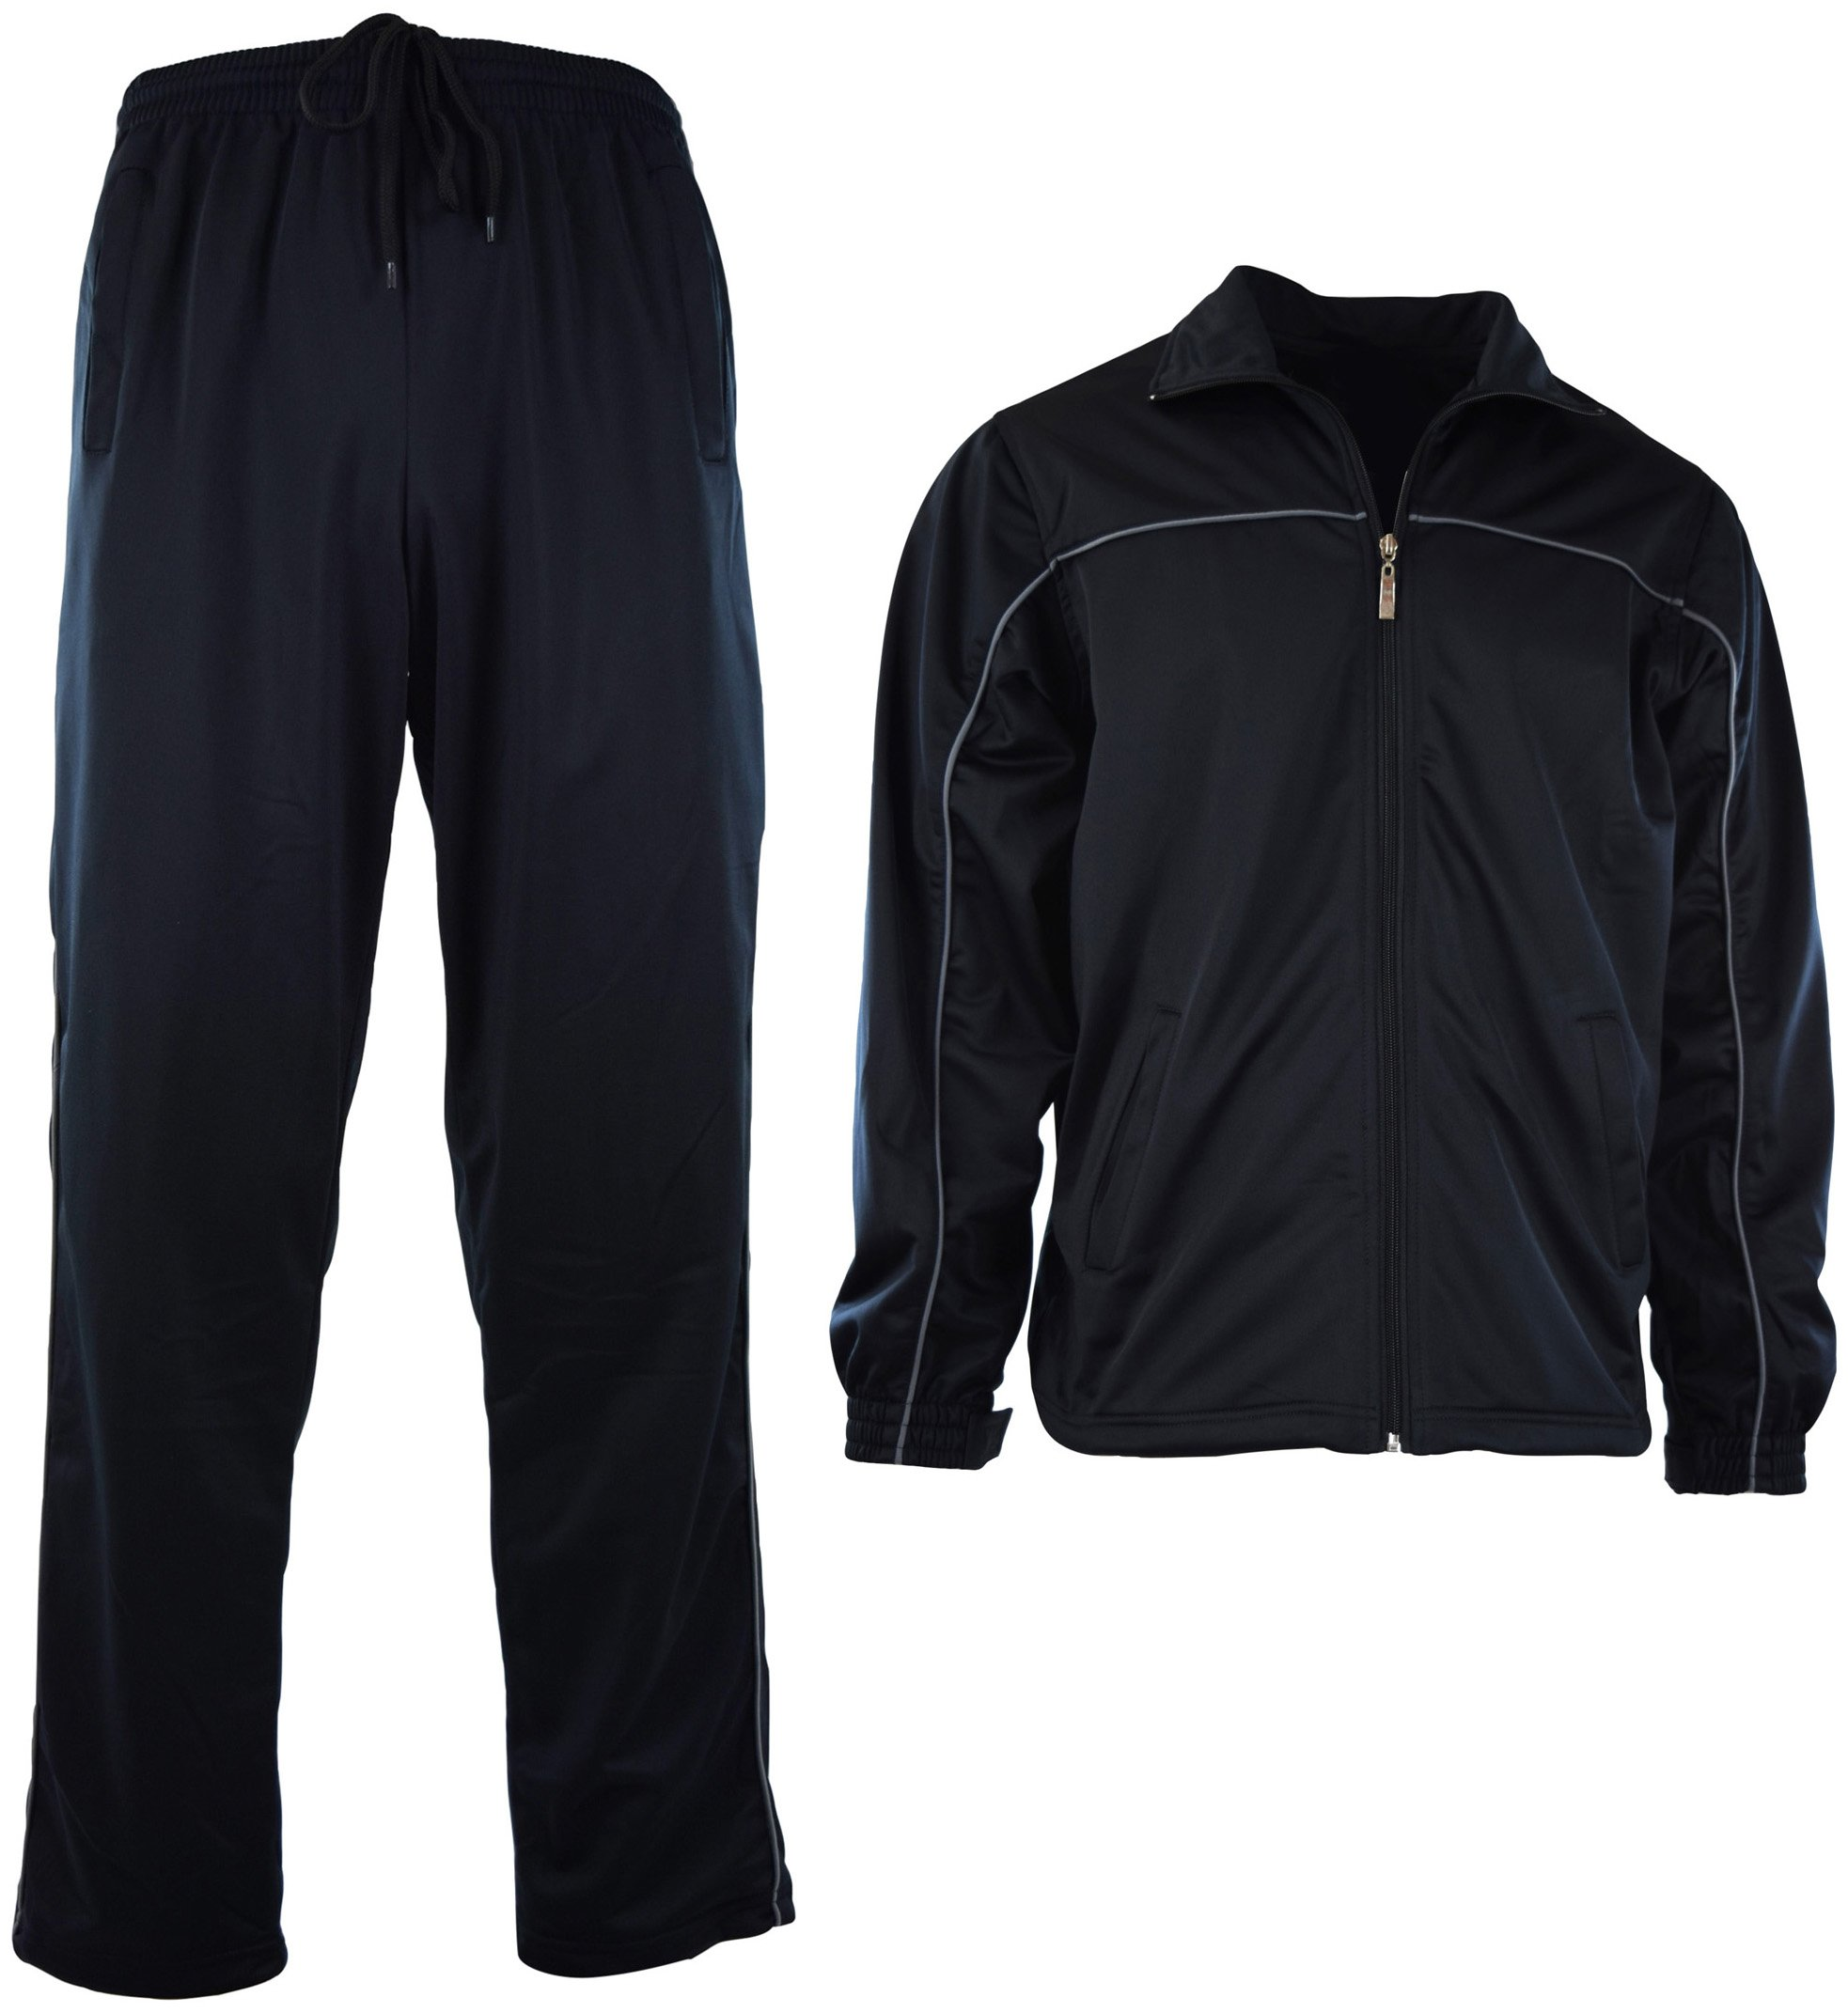 Mens Athletic 2 Piece Tracksuit Set (3XL, 212-BLACK) by ChoiceApparel